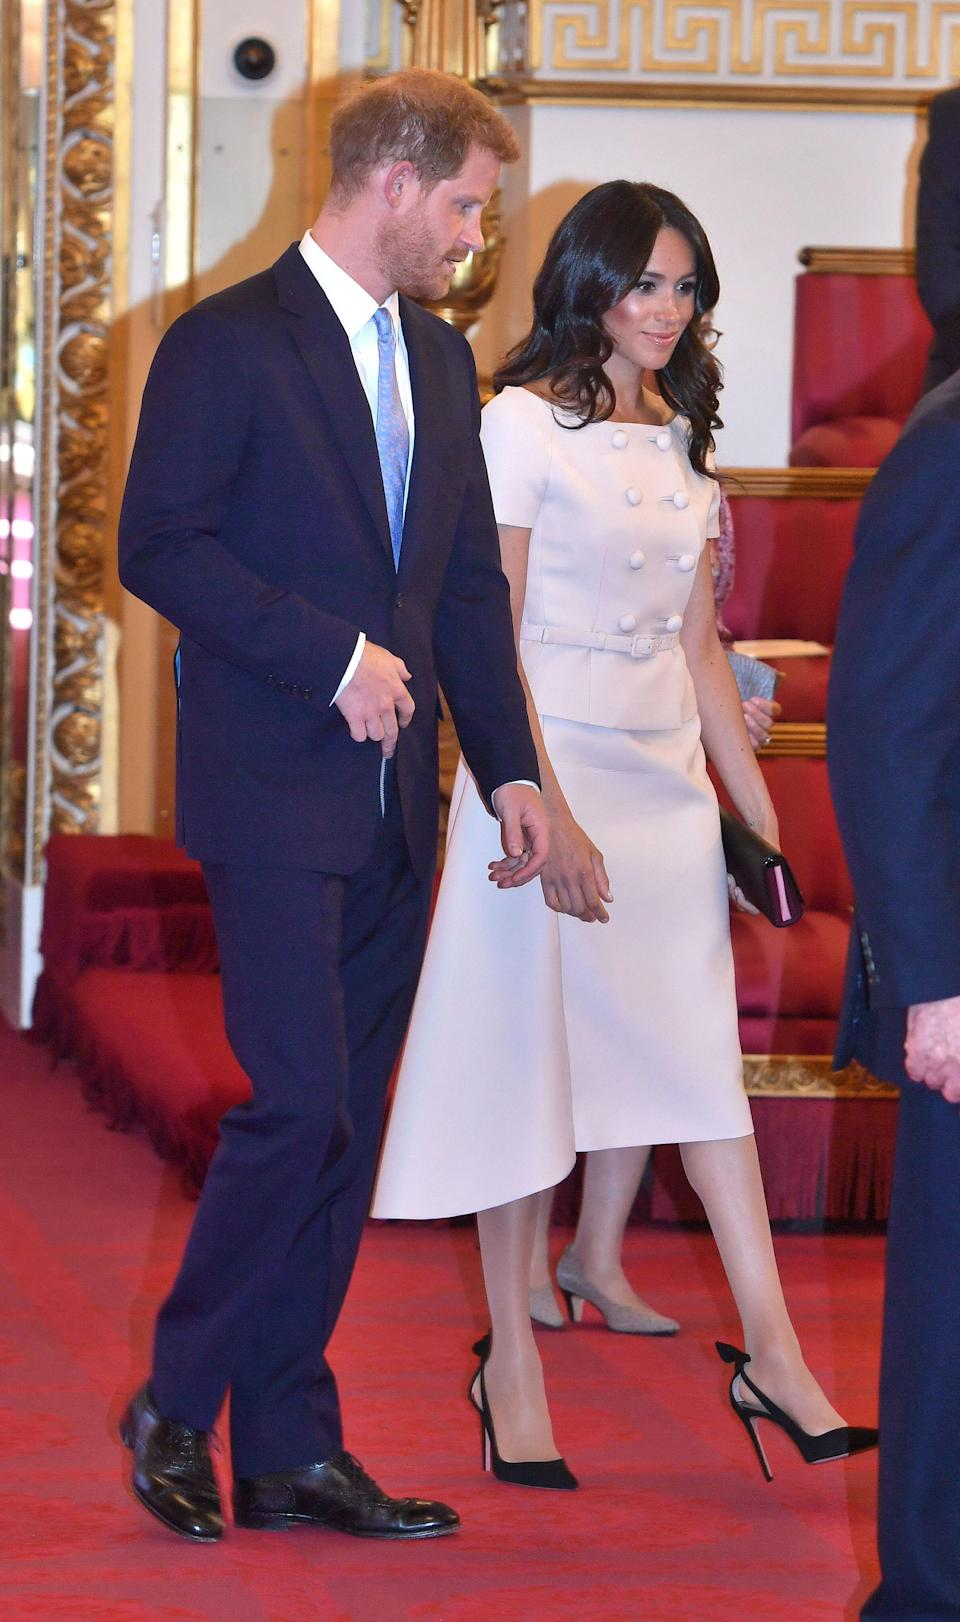 For the Queen's Young Leaders ceremony at Buckingham Palace on 27 June, Meghan opted for a powder pink skirt suit by Prada [Photo: PA]